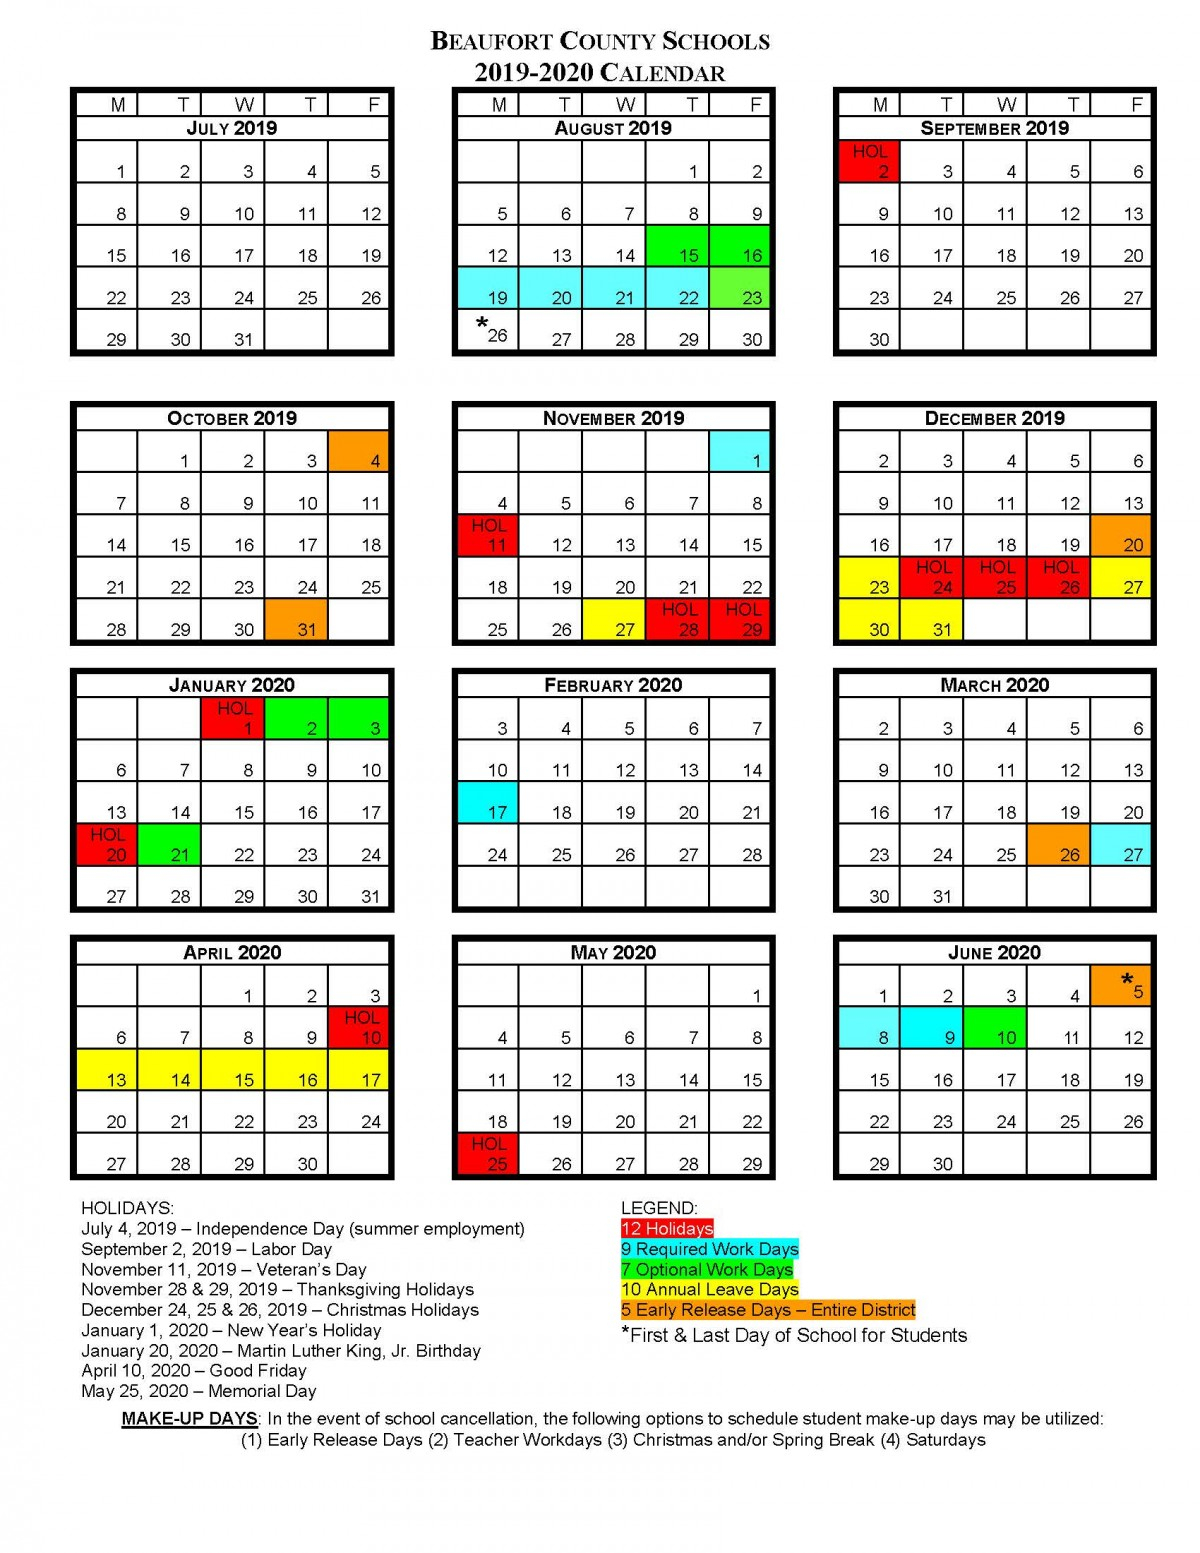 Bcs School Calendars | Beaufort County Schools for Virginia Tech Academic Calendar 2019 2020